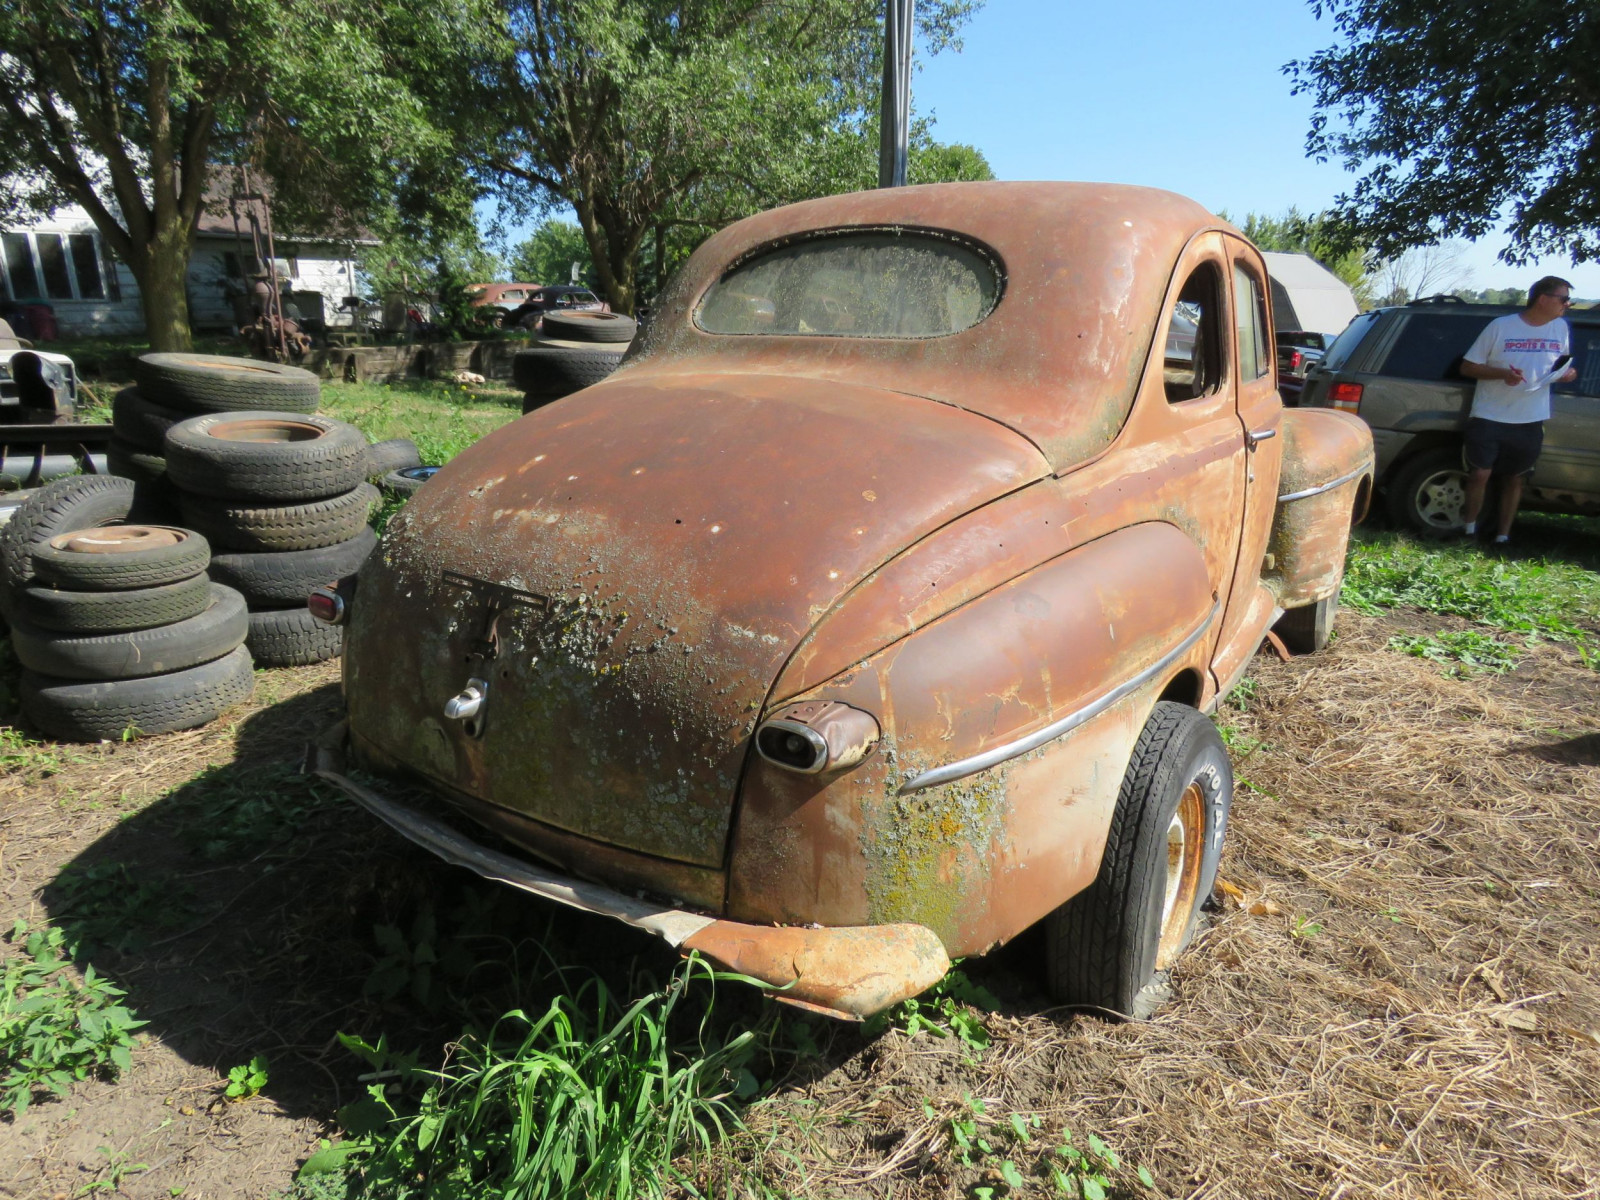 1946 Ford 2dr Coupe for Rod or Restore - Image 3